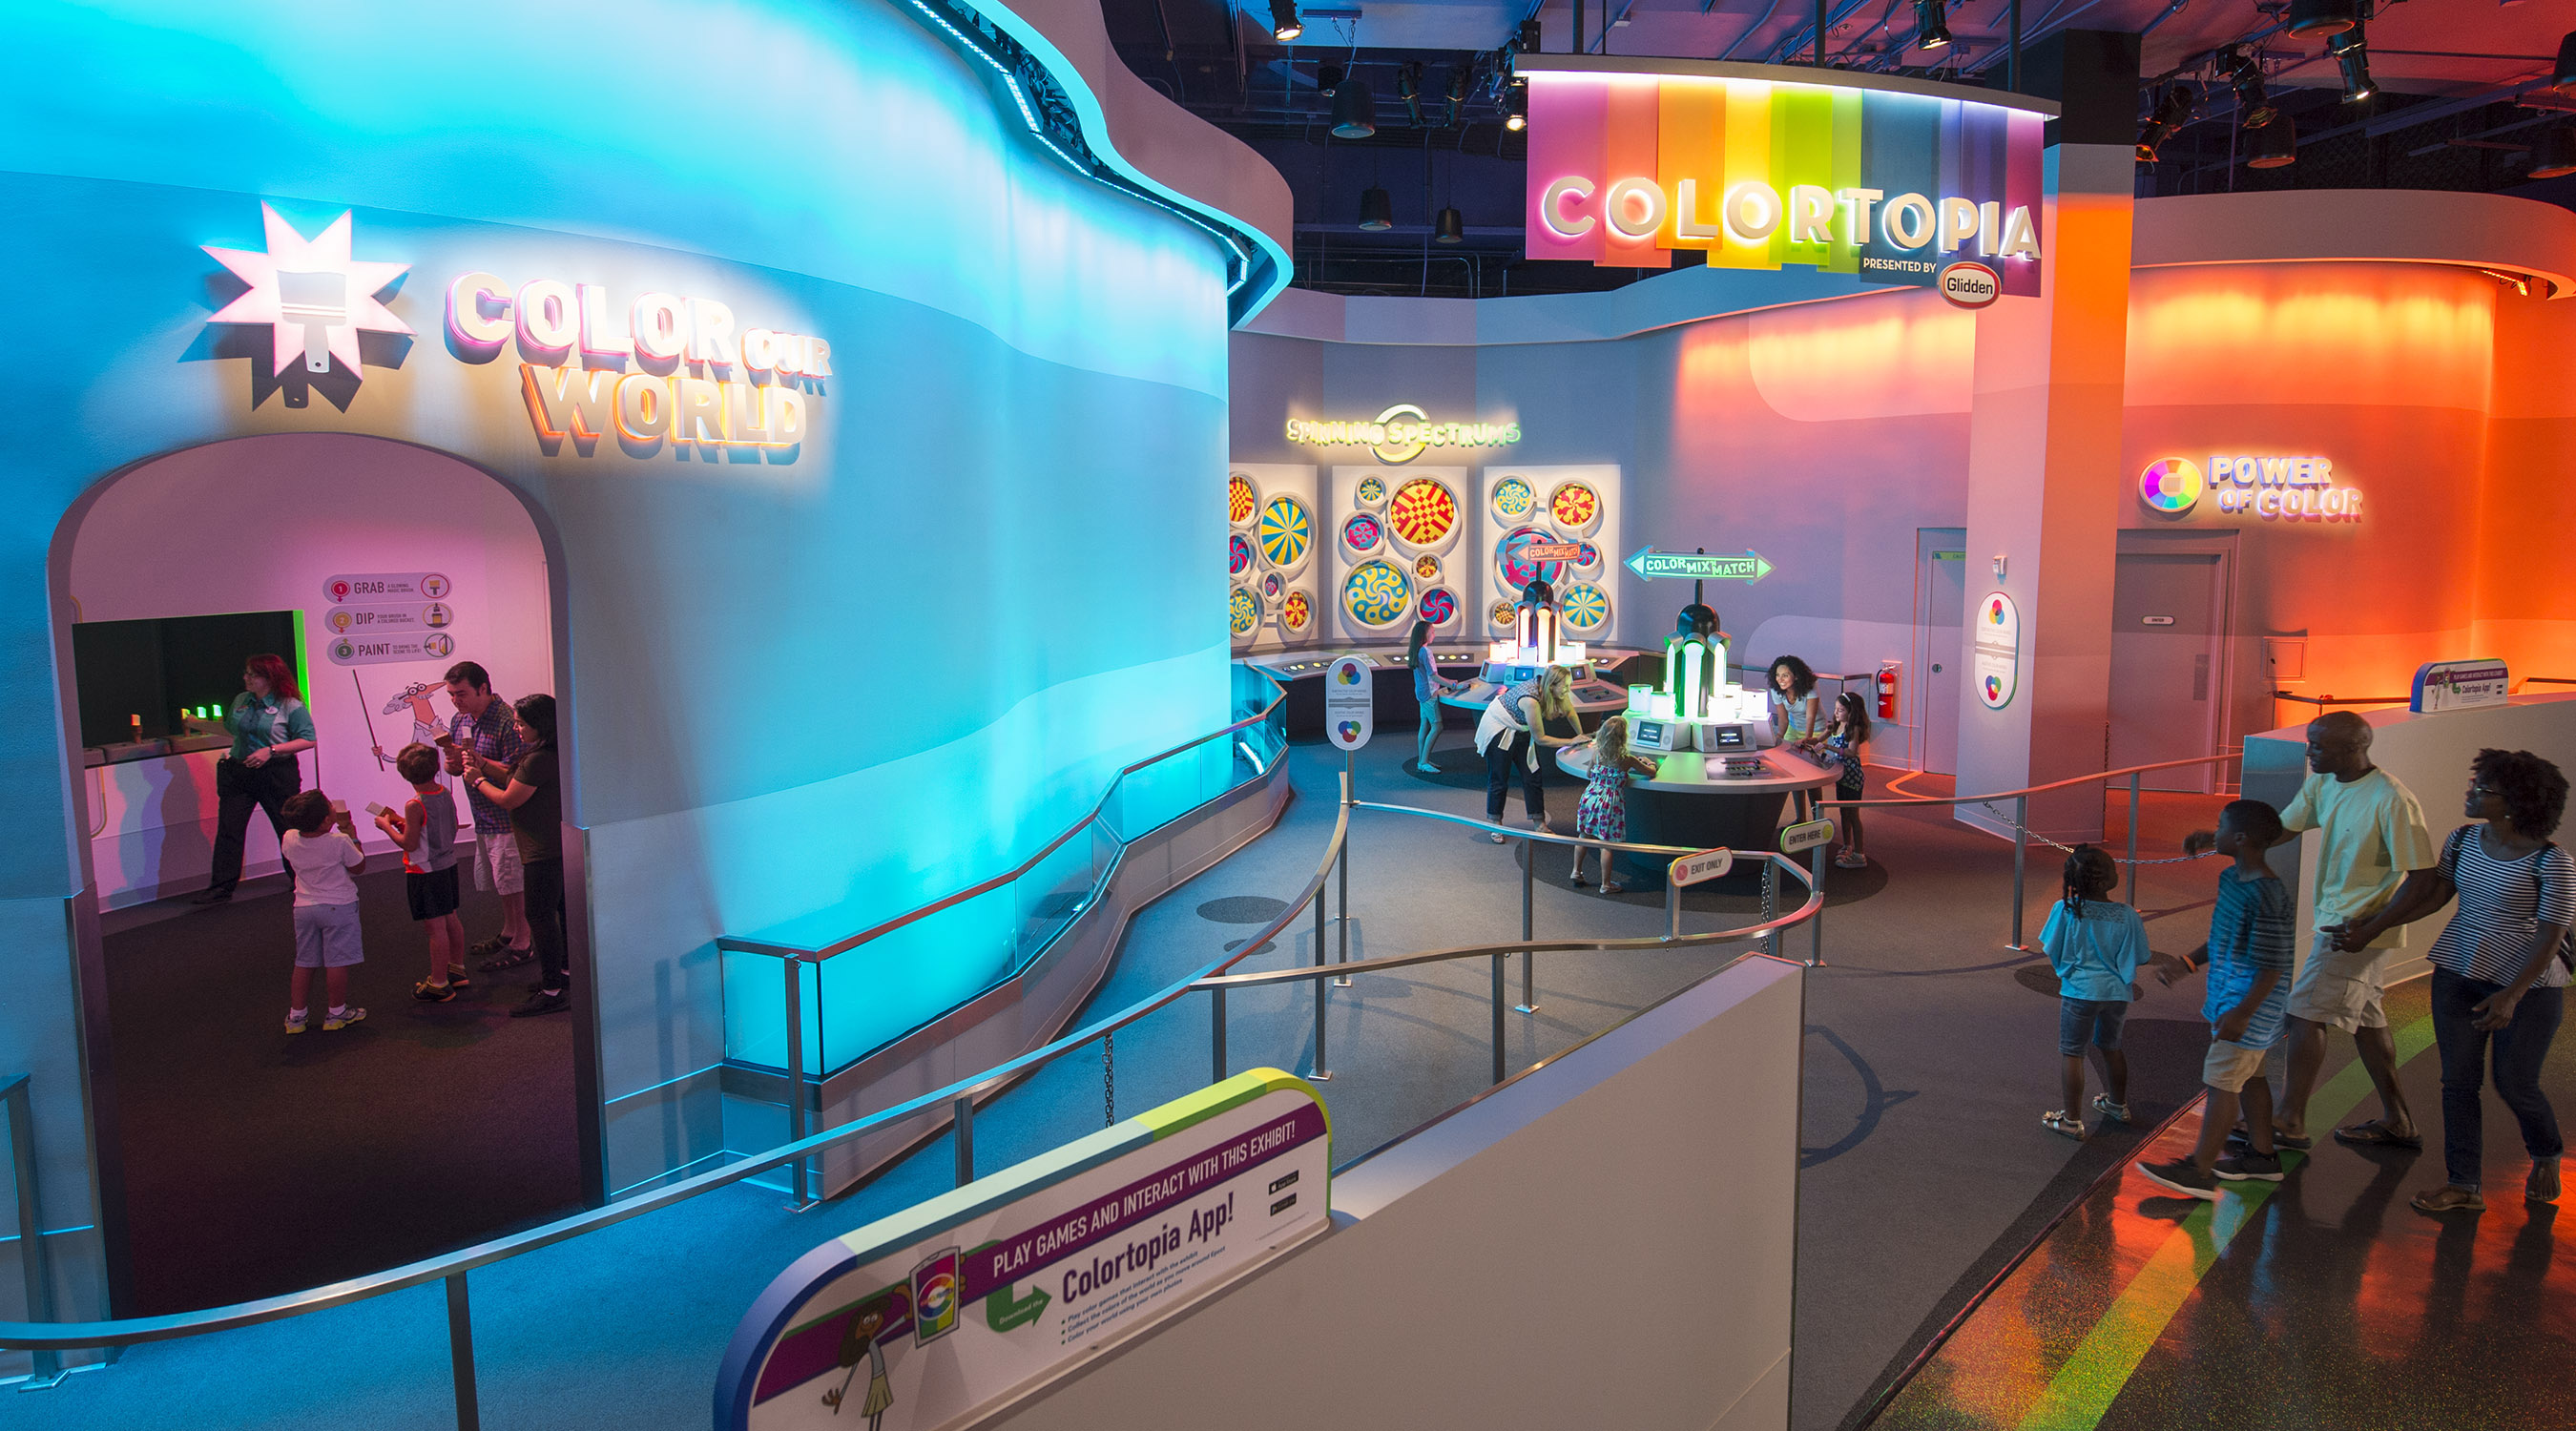 Epcot's Newest Attraction – Colortopia in Innoventions ...